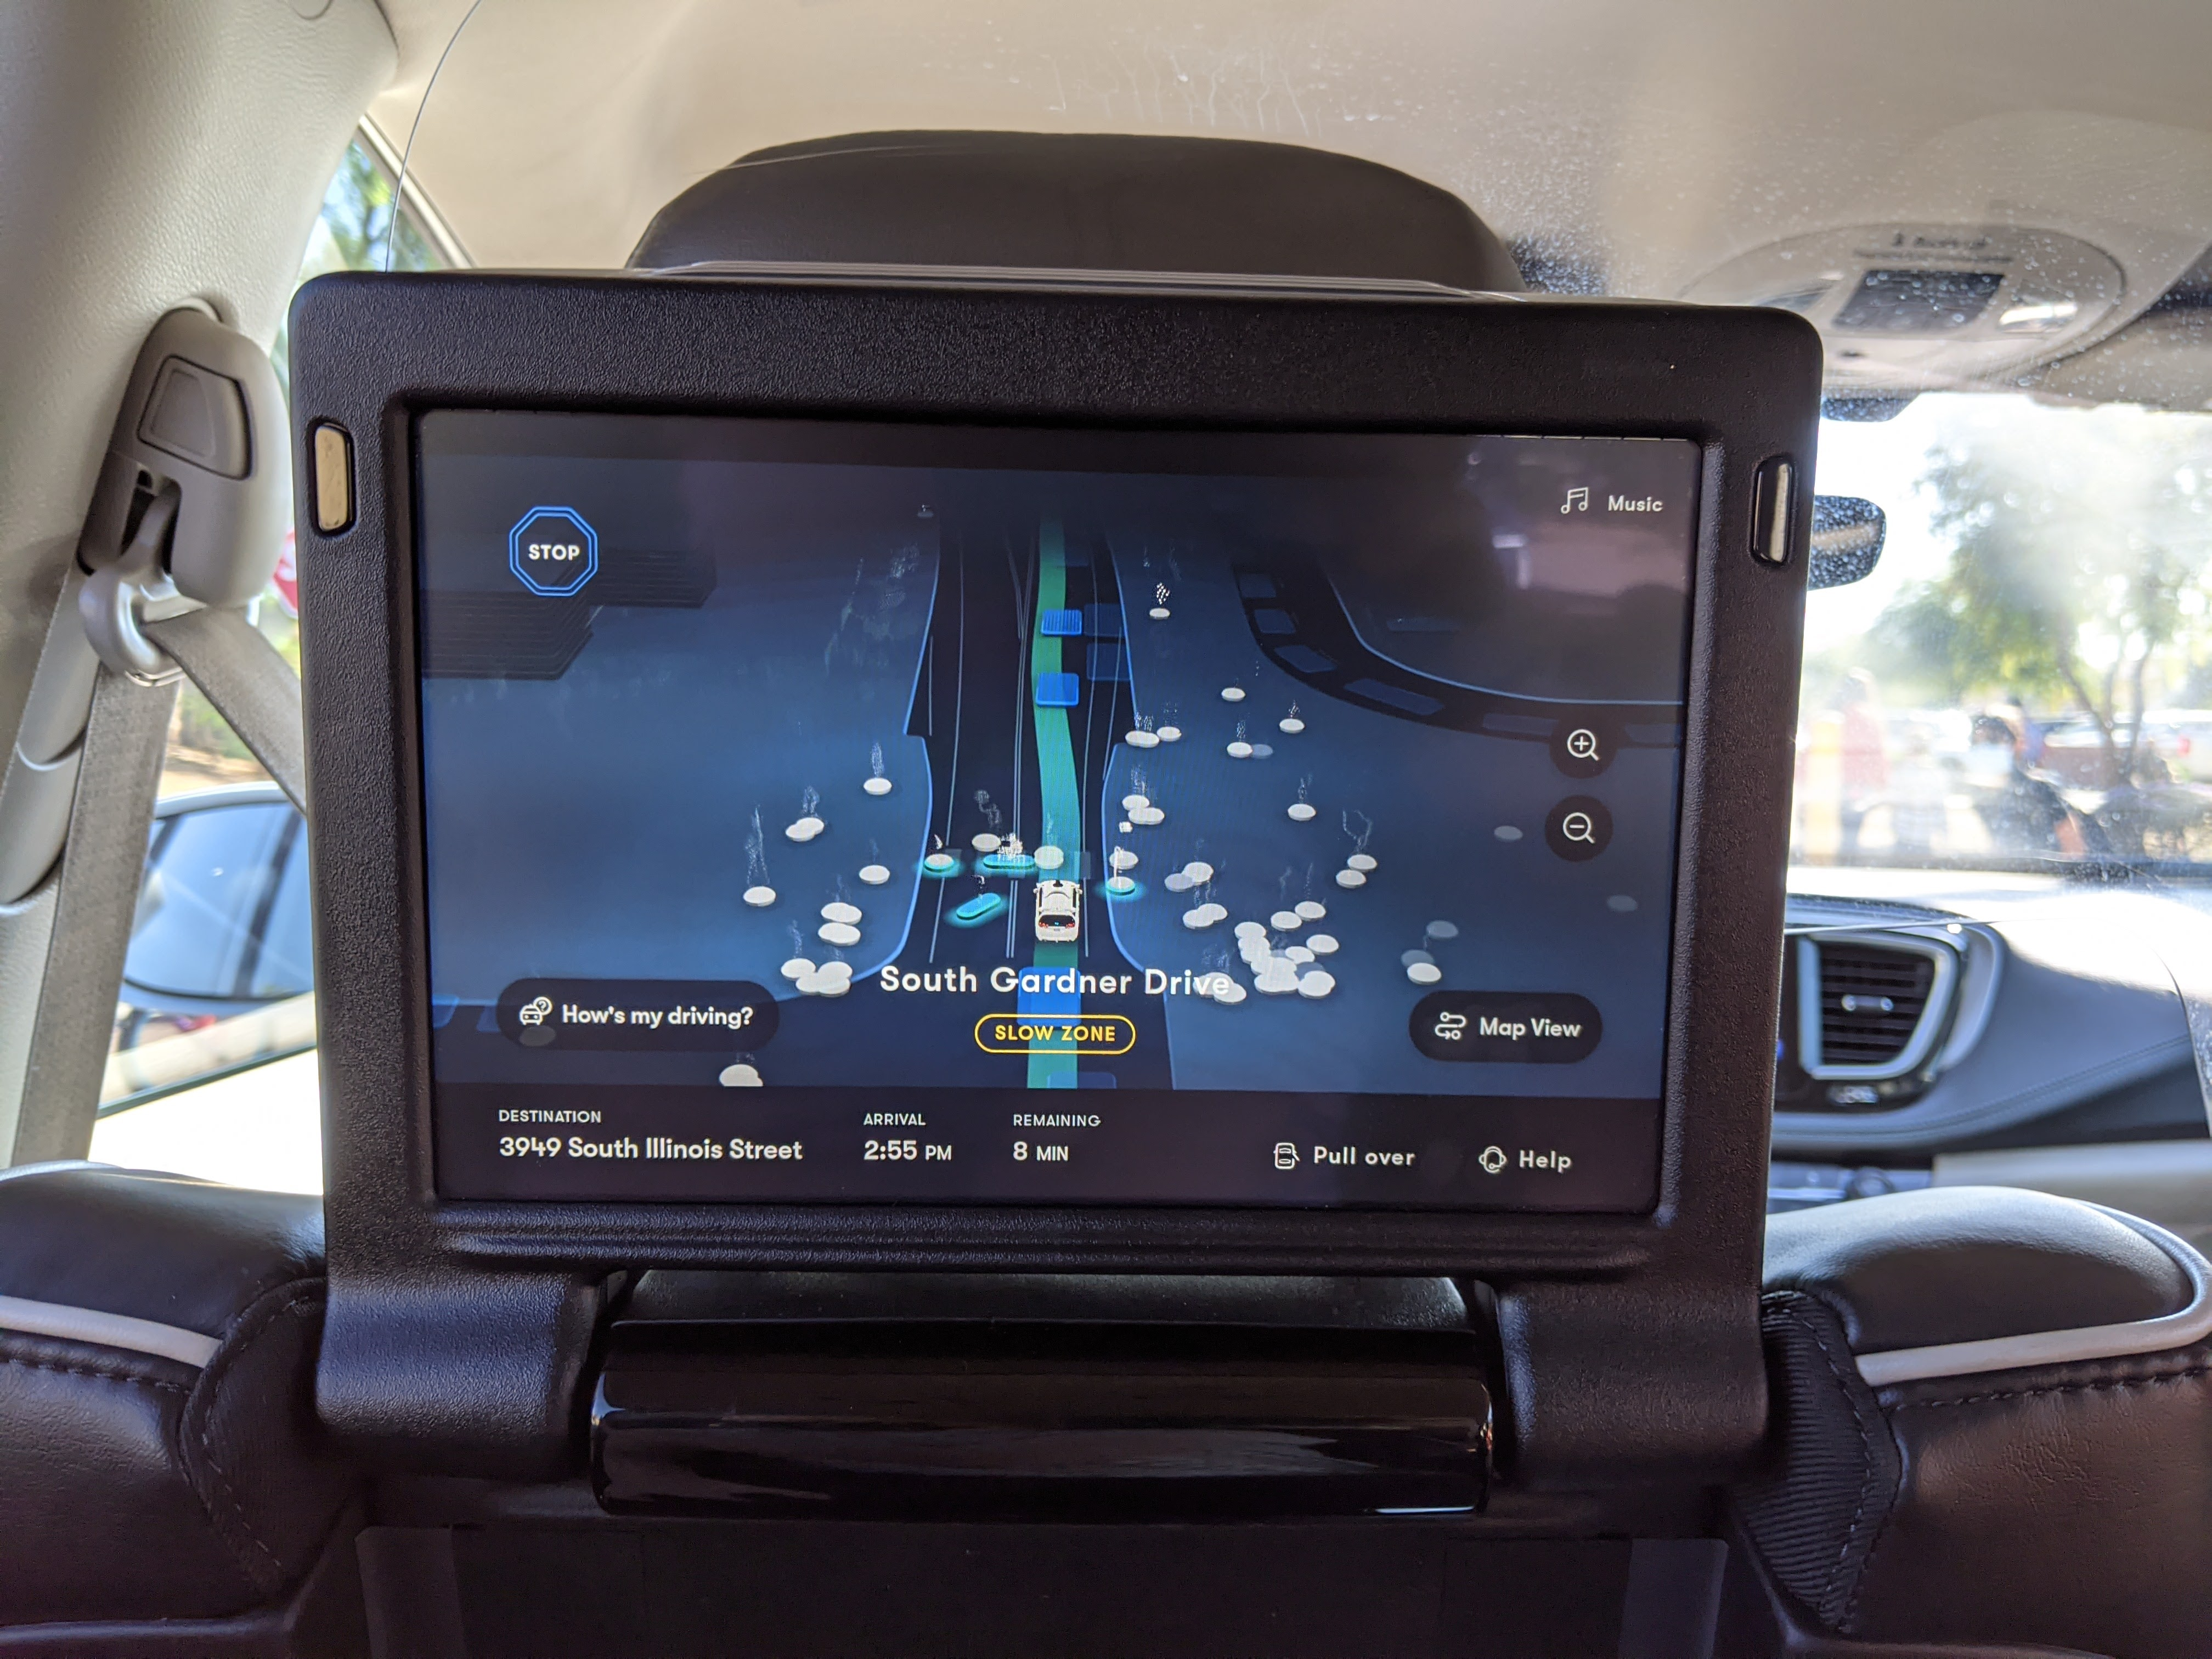 A seat-back display updates customers on the state of the ride.